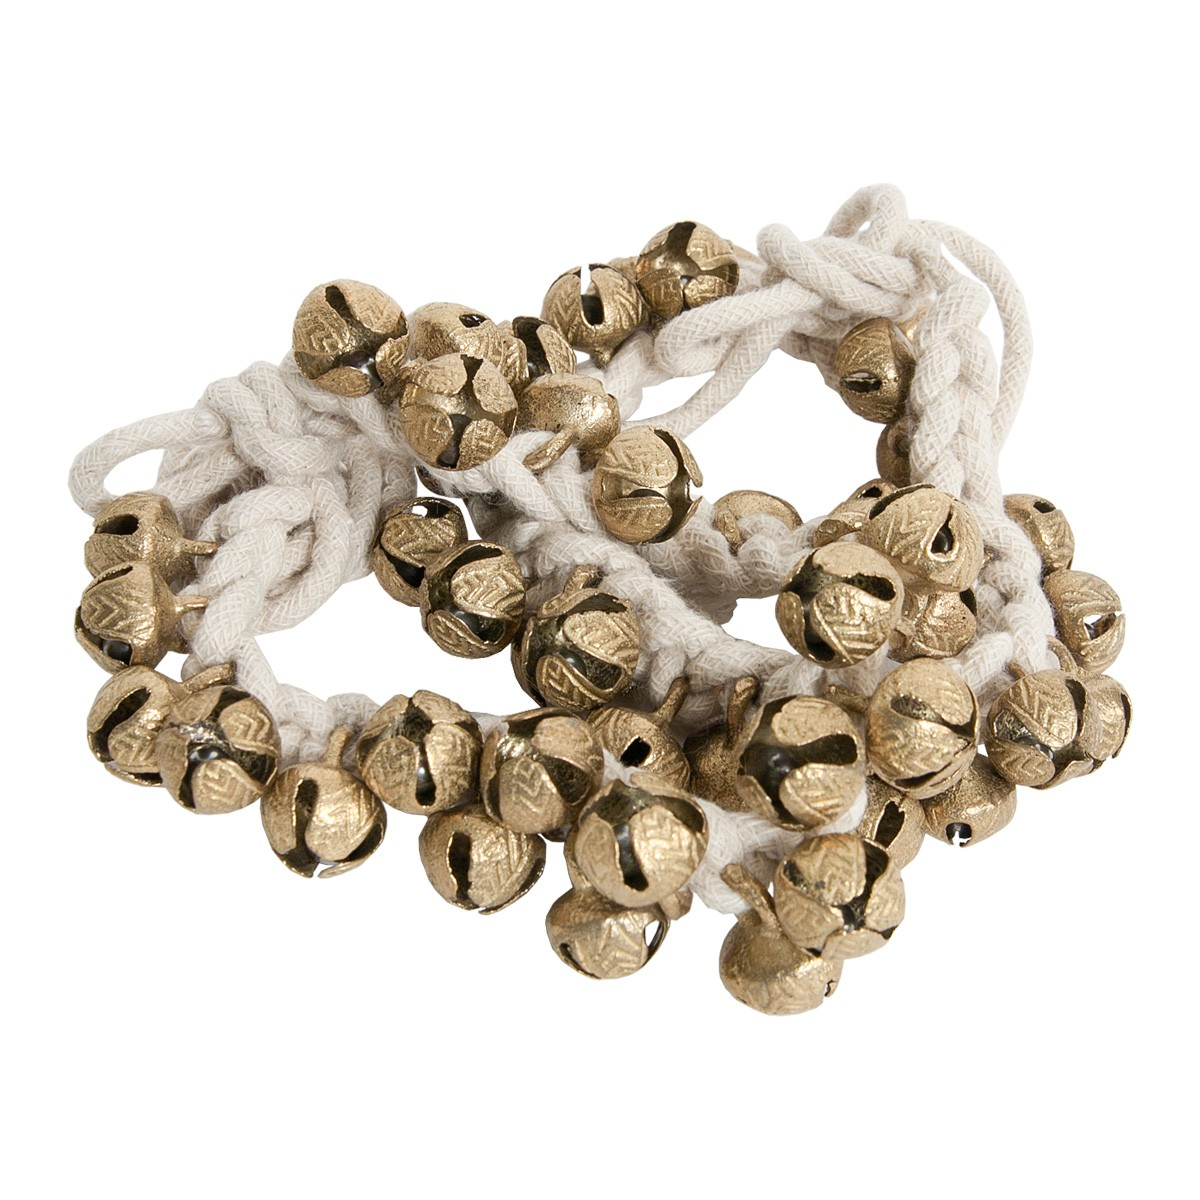 Mid-East String of 25 Round Ankle Bells - Pair